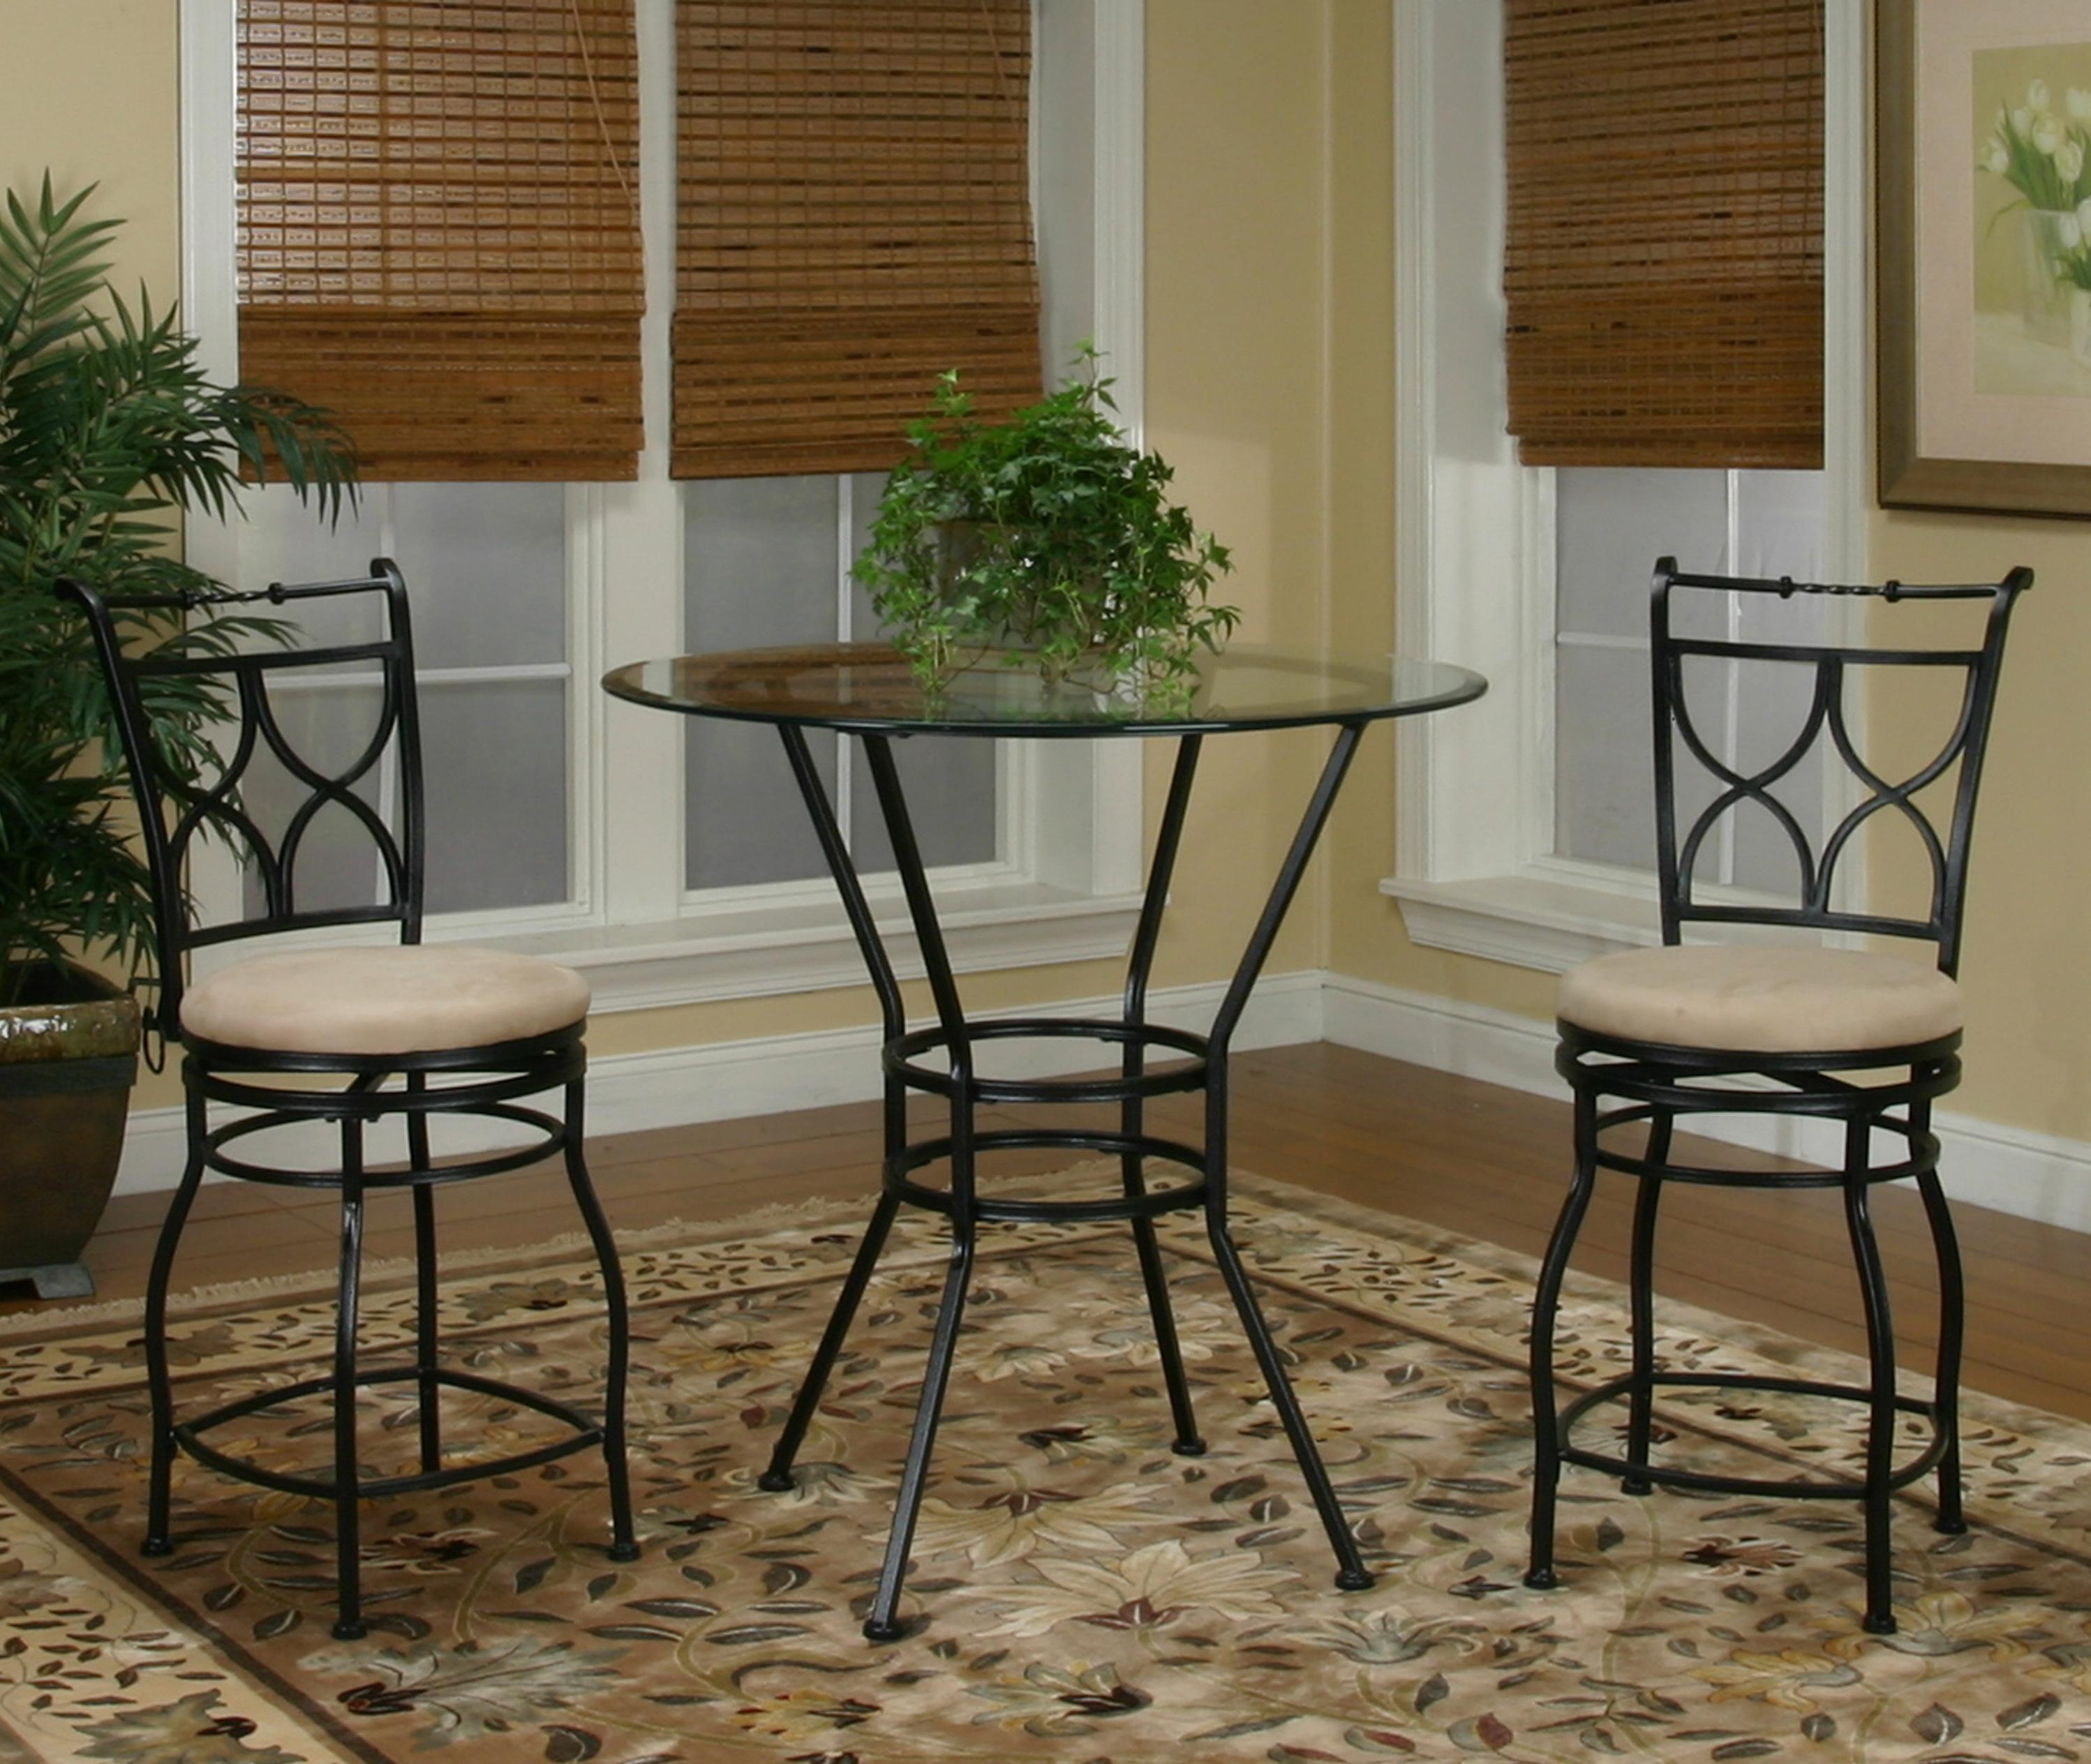 3 Piece Glass Top Metal Pub Set with X Back Swivel Stools by Cramco